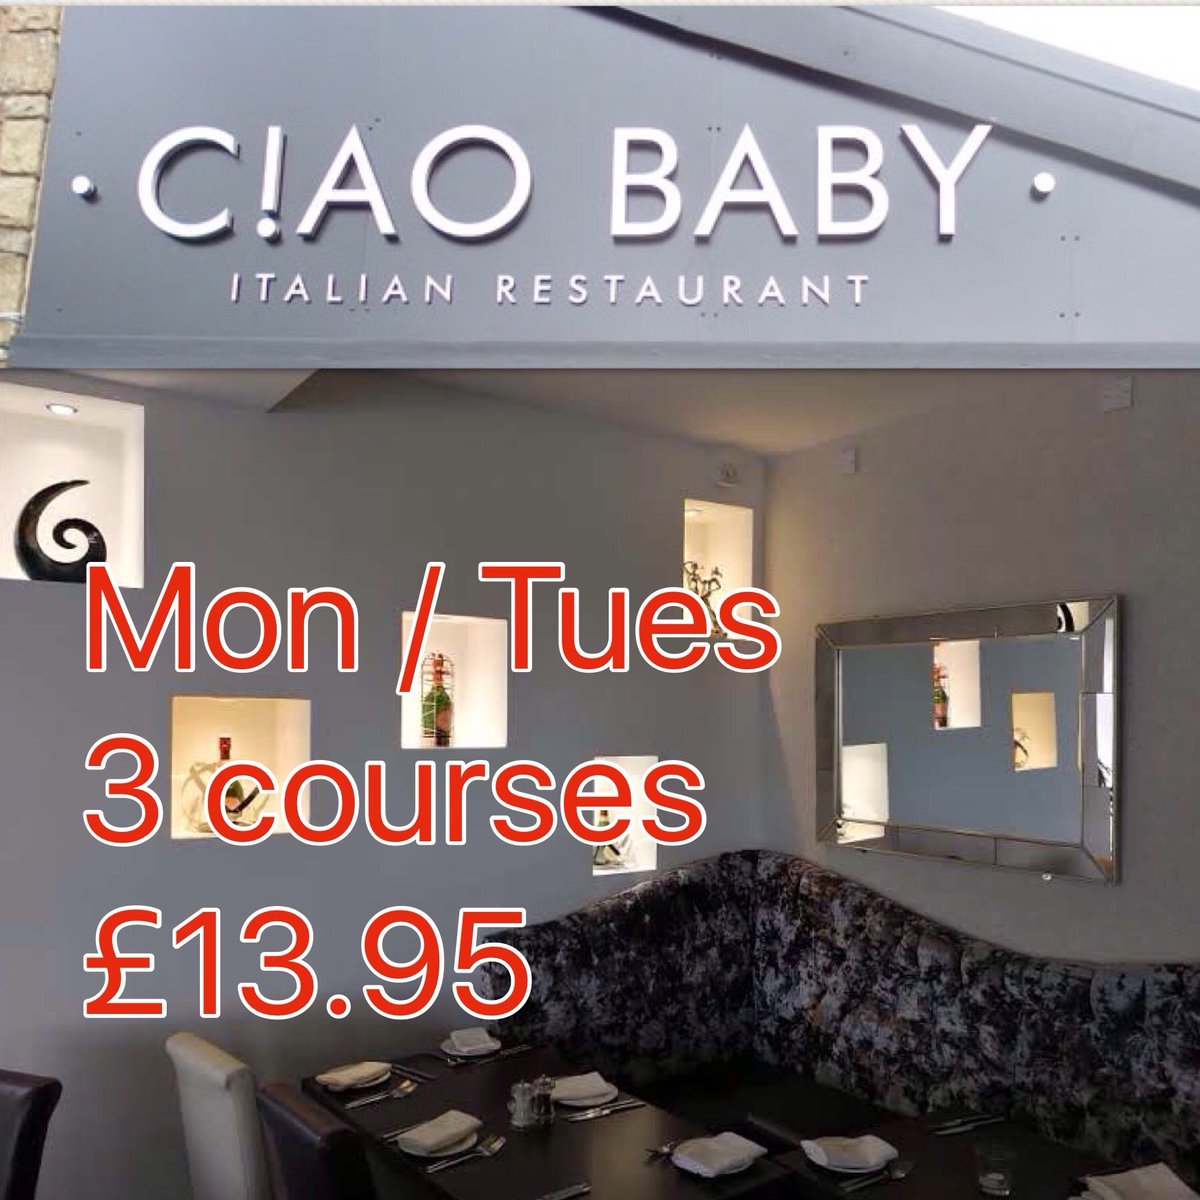 Pls RT , Every Monday and Tuesday - 3 courses for £13.95* #Bolton #Italian #restaurant #food #Monday #Tuesday<br>http://pic.twitter.com/aQXzlDGeEf